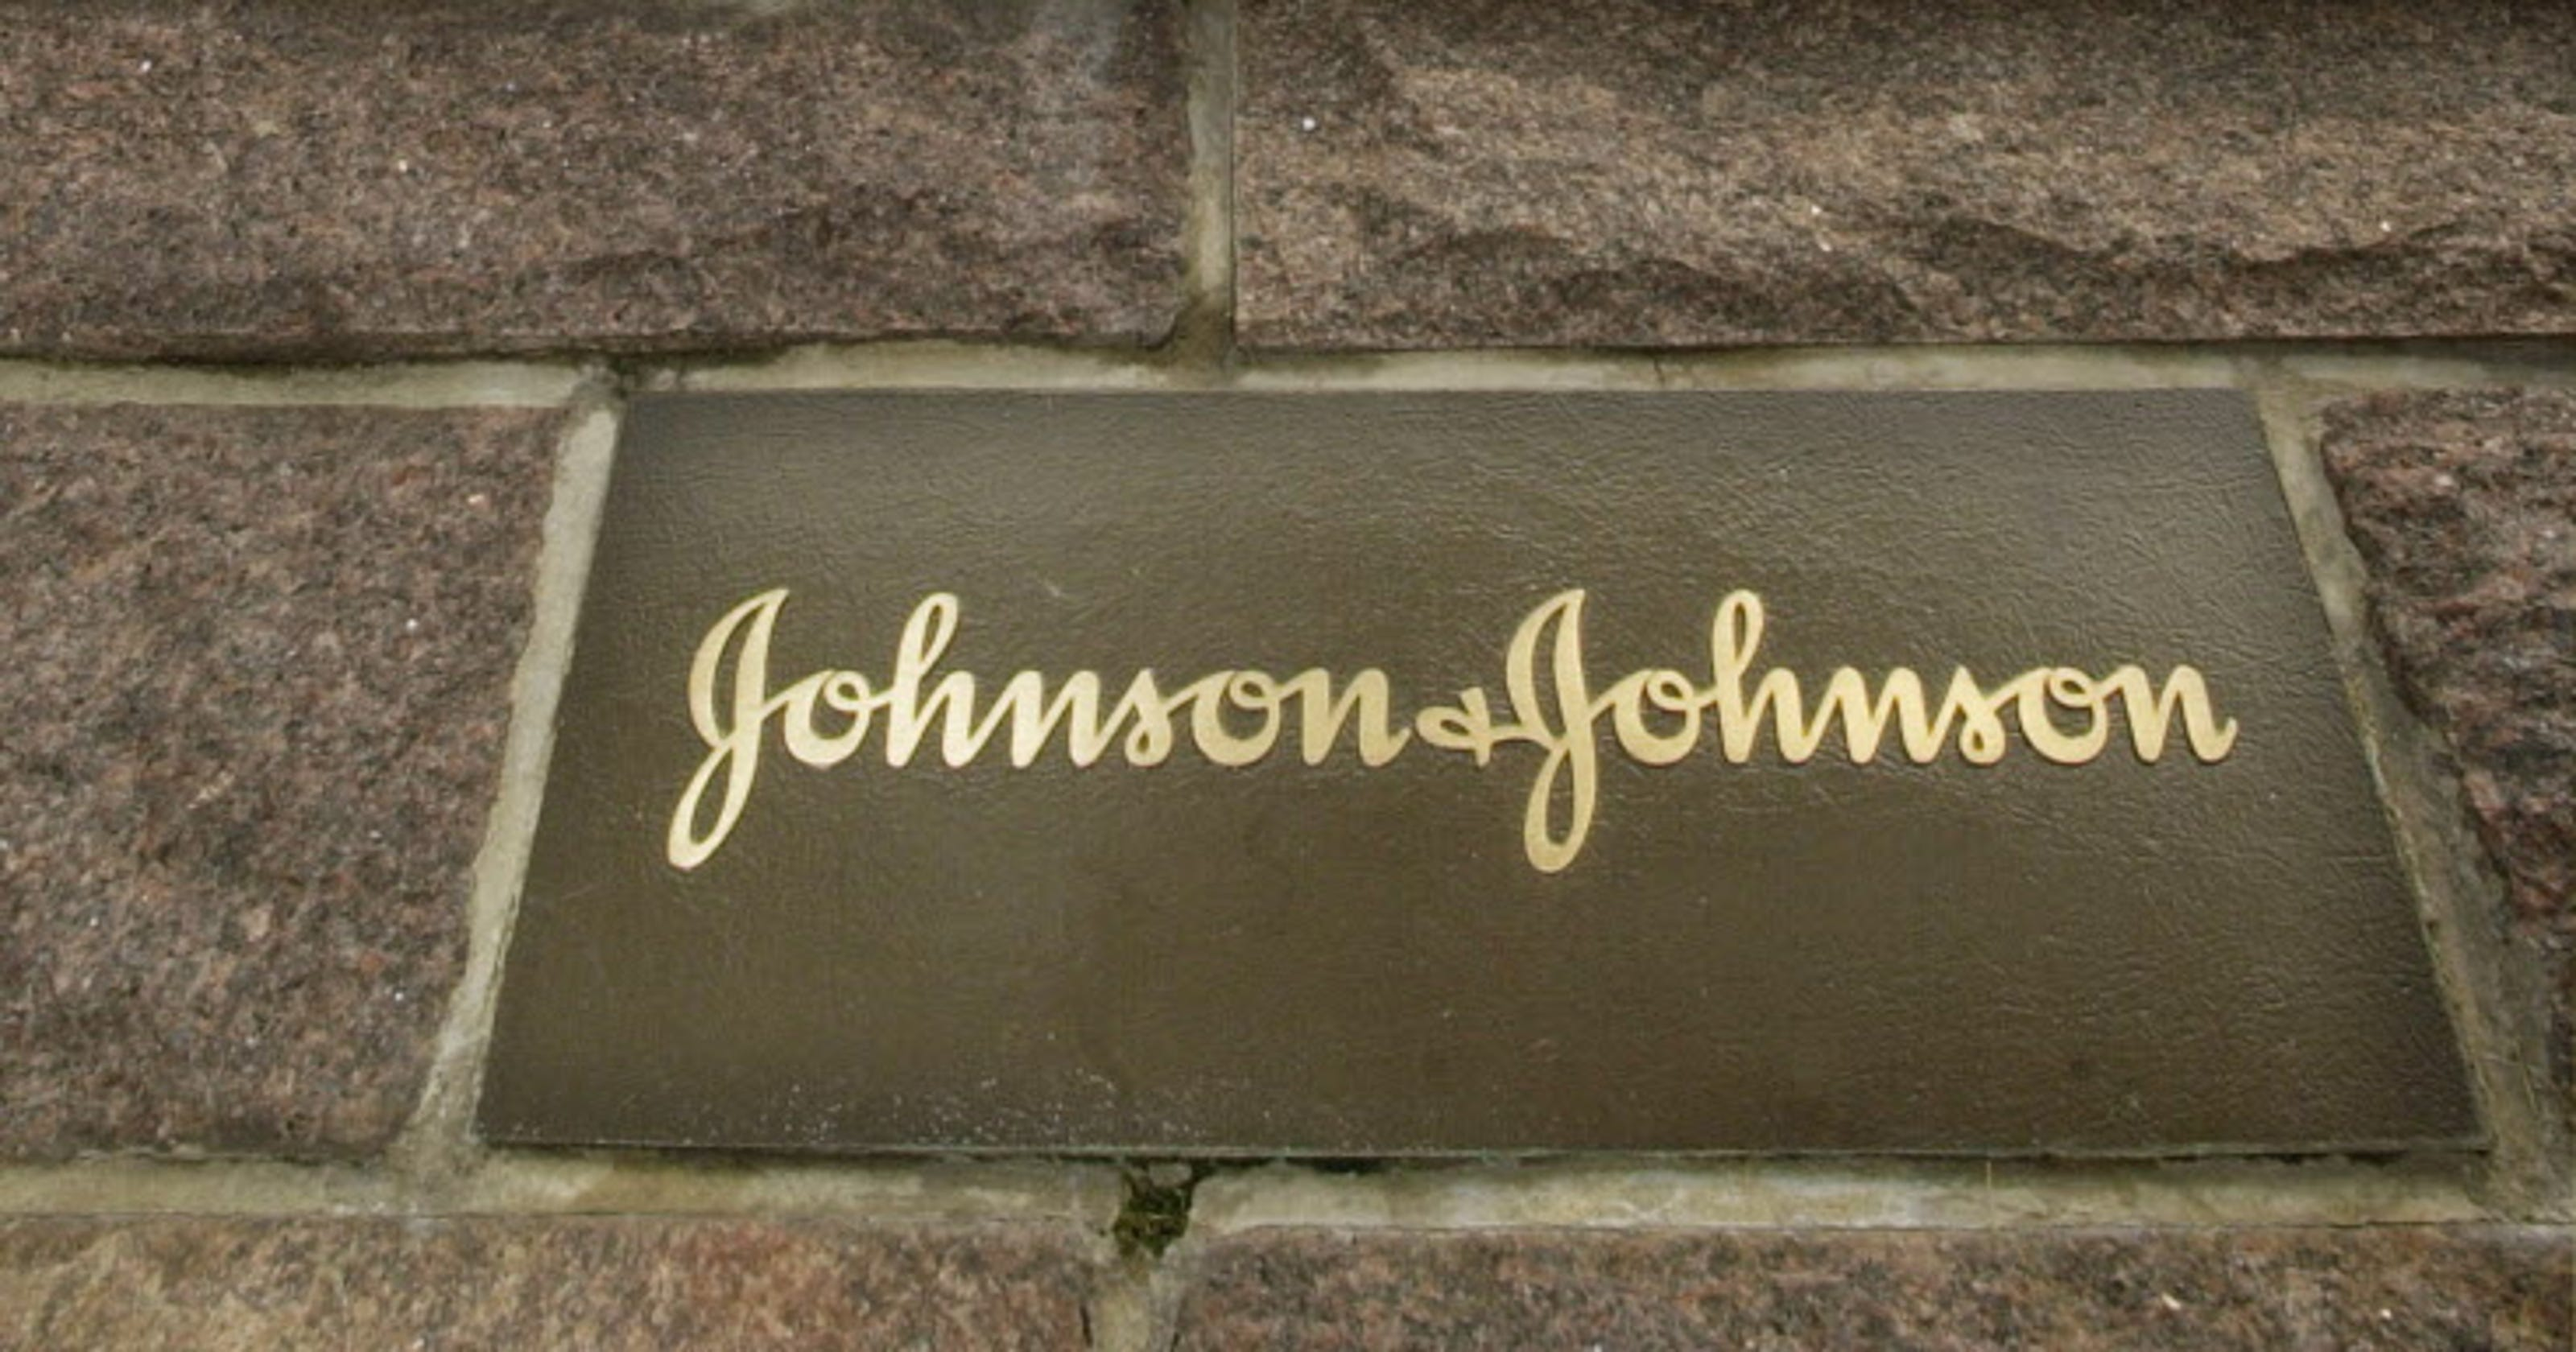 Johnson & Johnson acquires beauty products firm Vogue